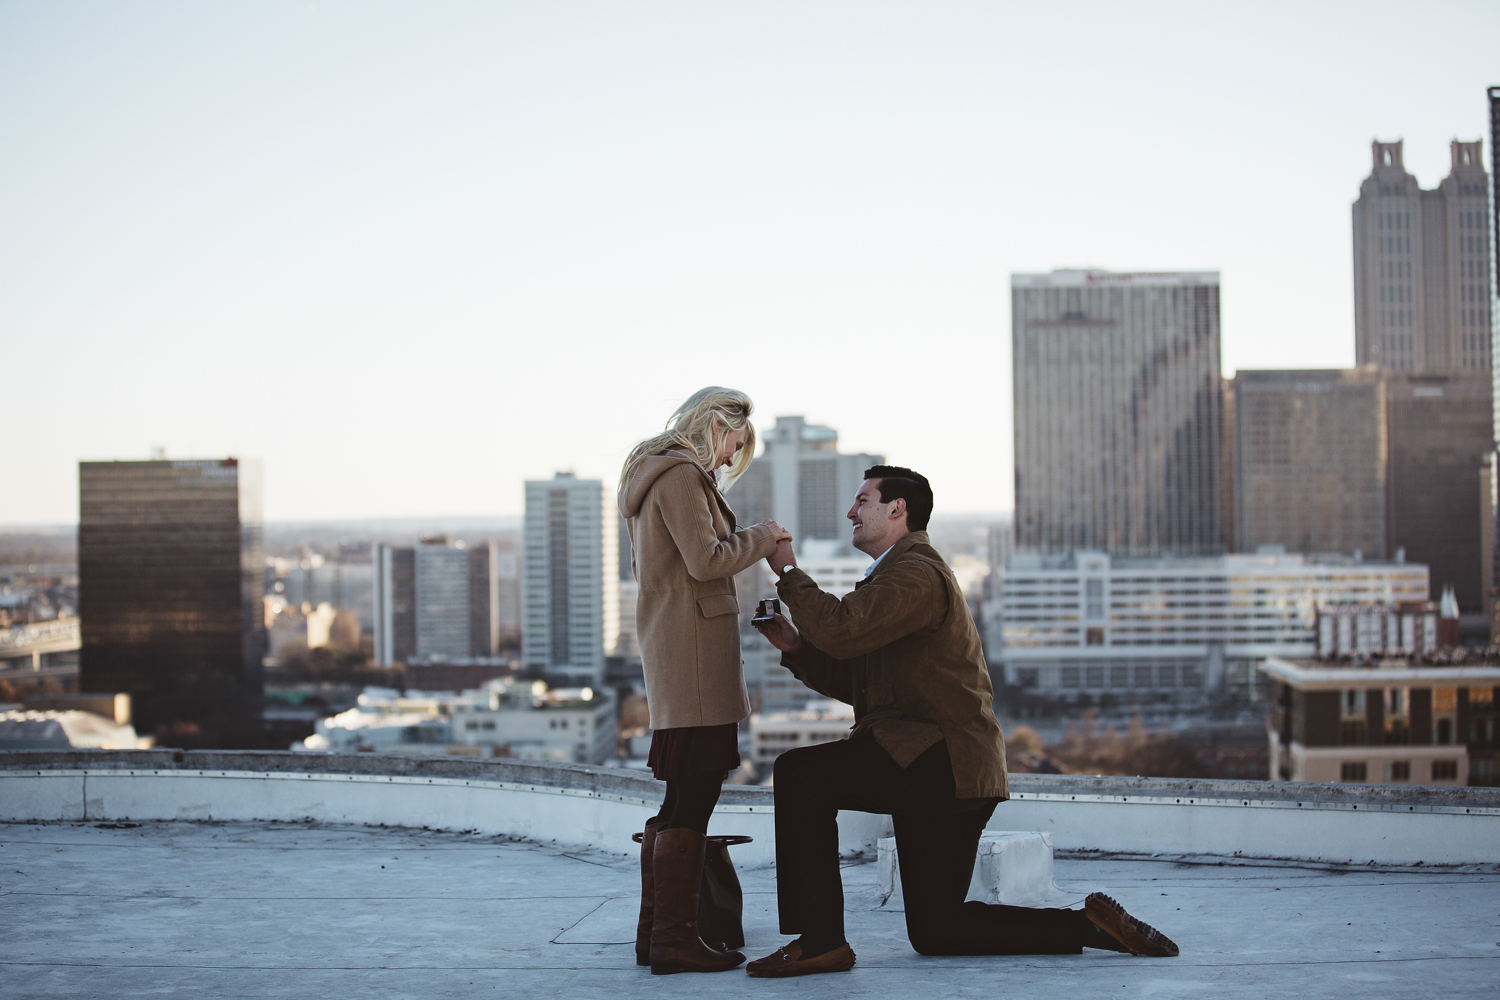 KDP_claire&drew - the proposal-12.jpg